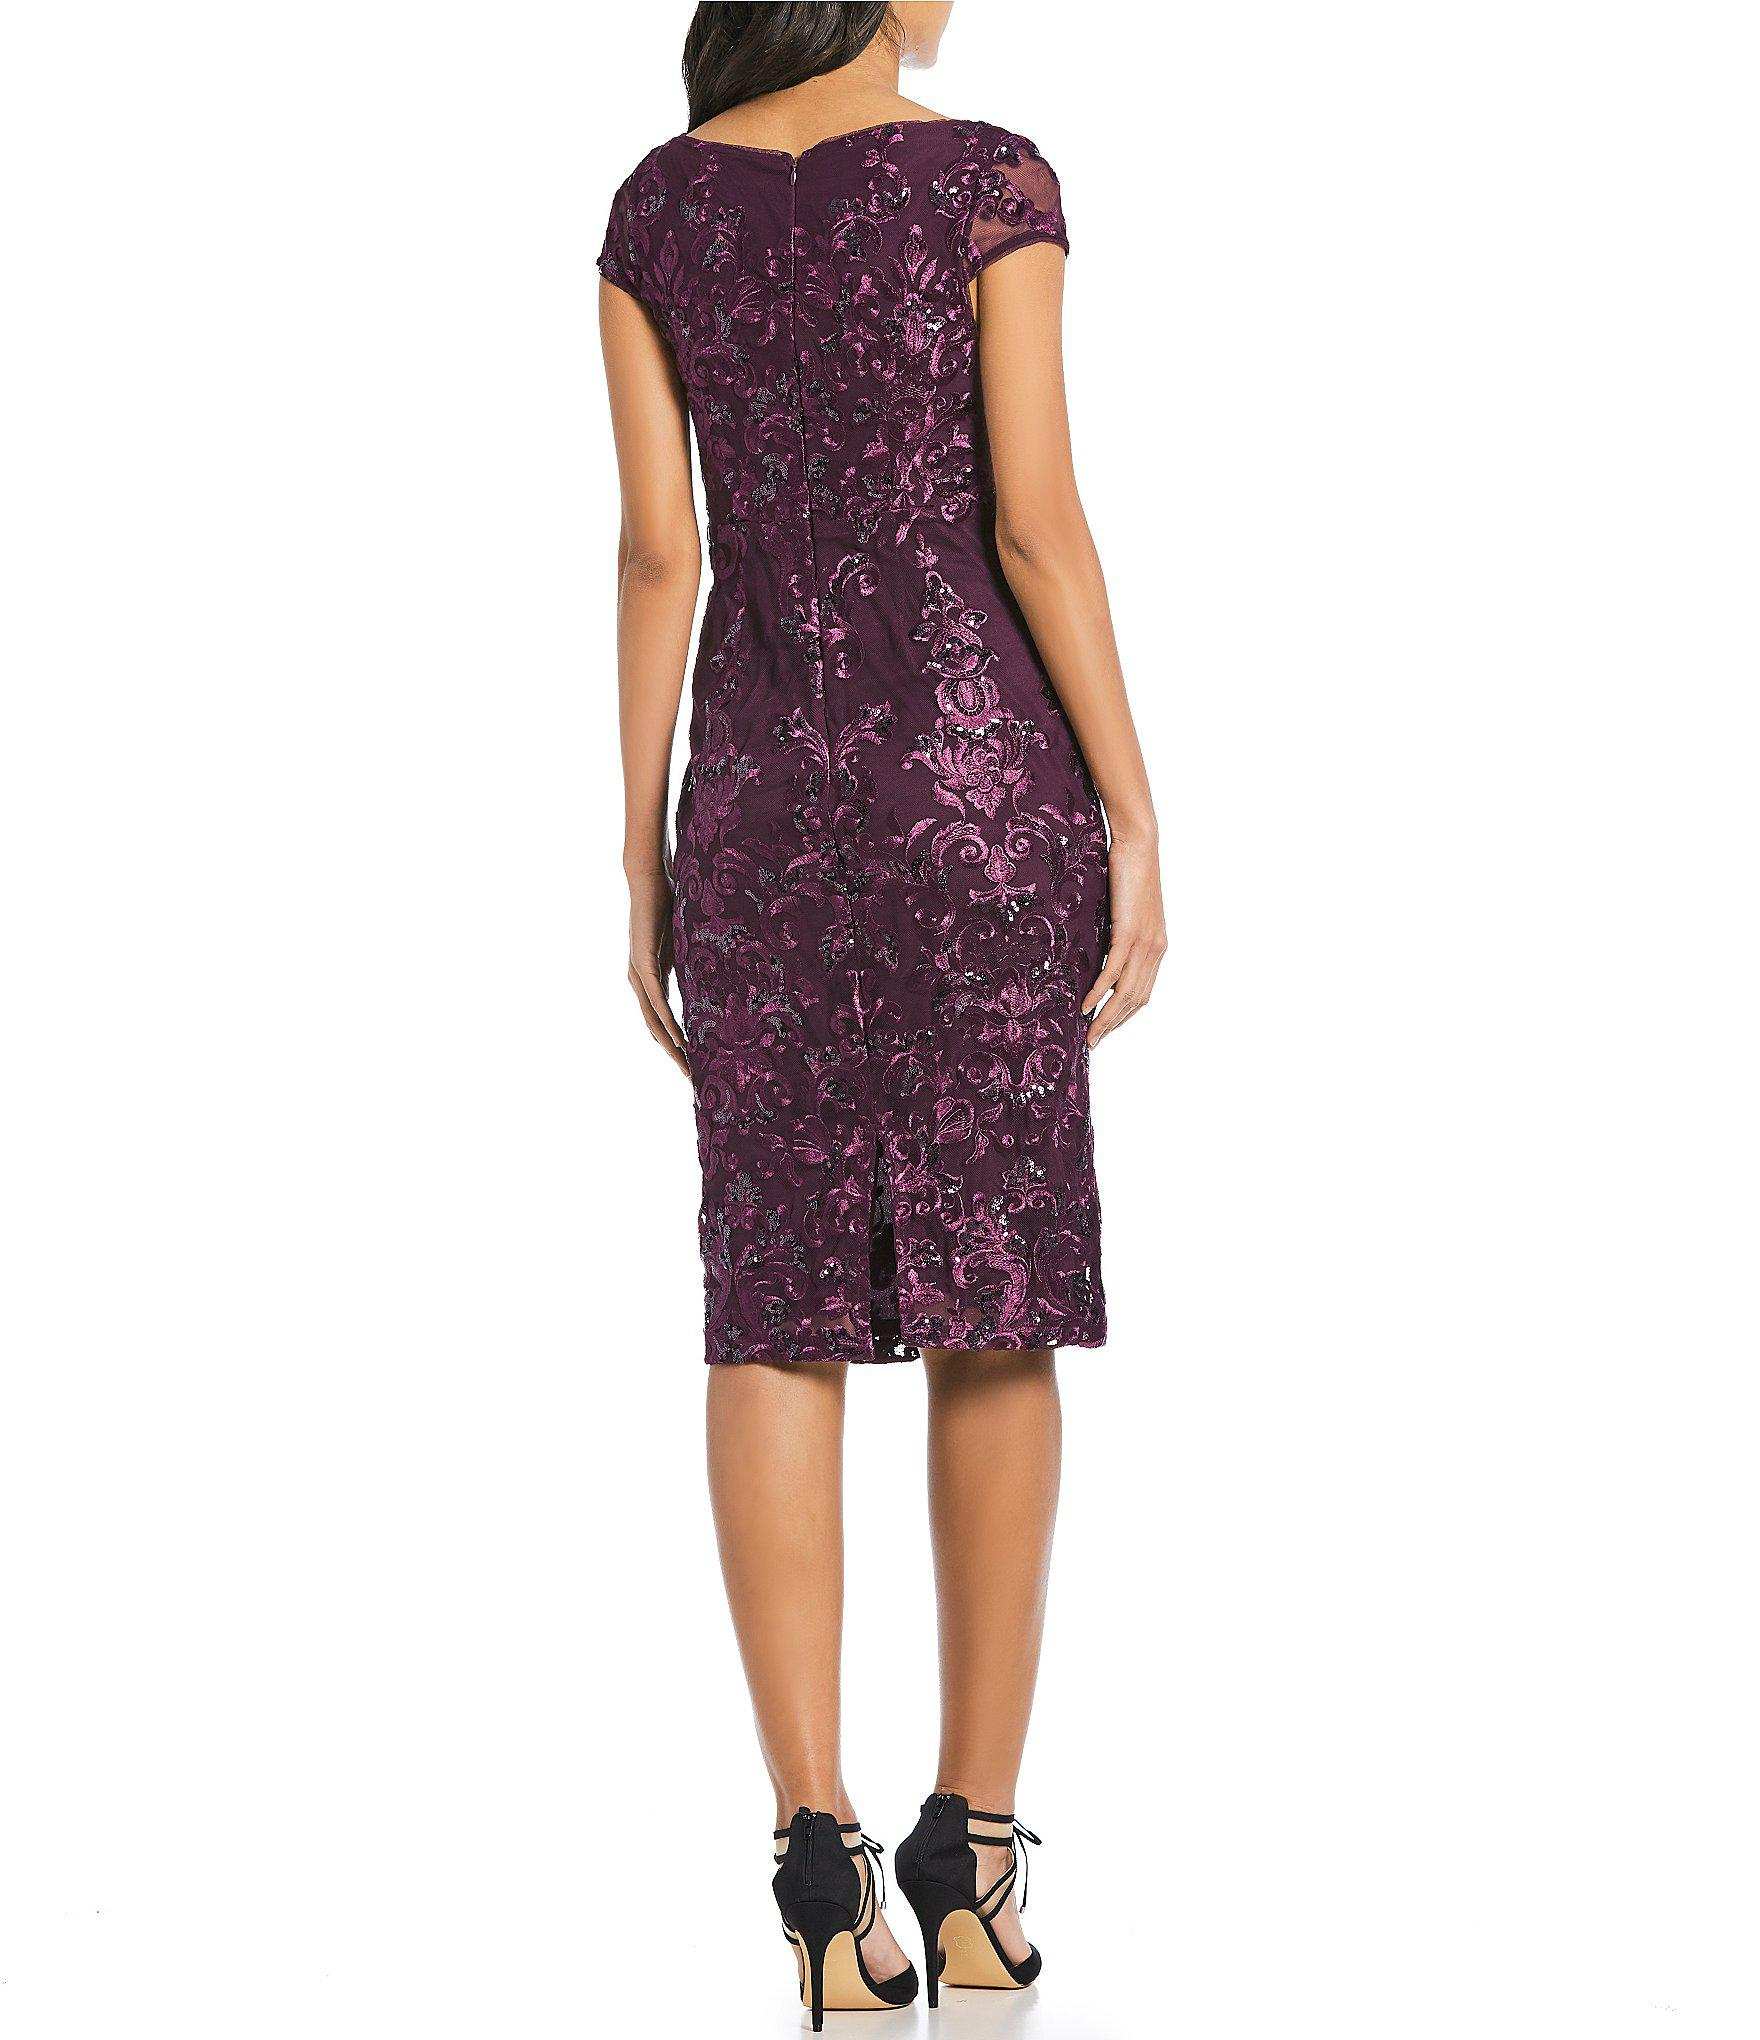 a1dff253d3 Marina Cap Sleeve Embroidered Sequin Lace Sheath Dress in Purple - Lyst